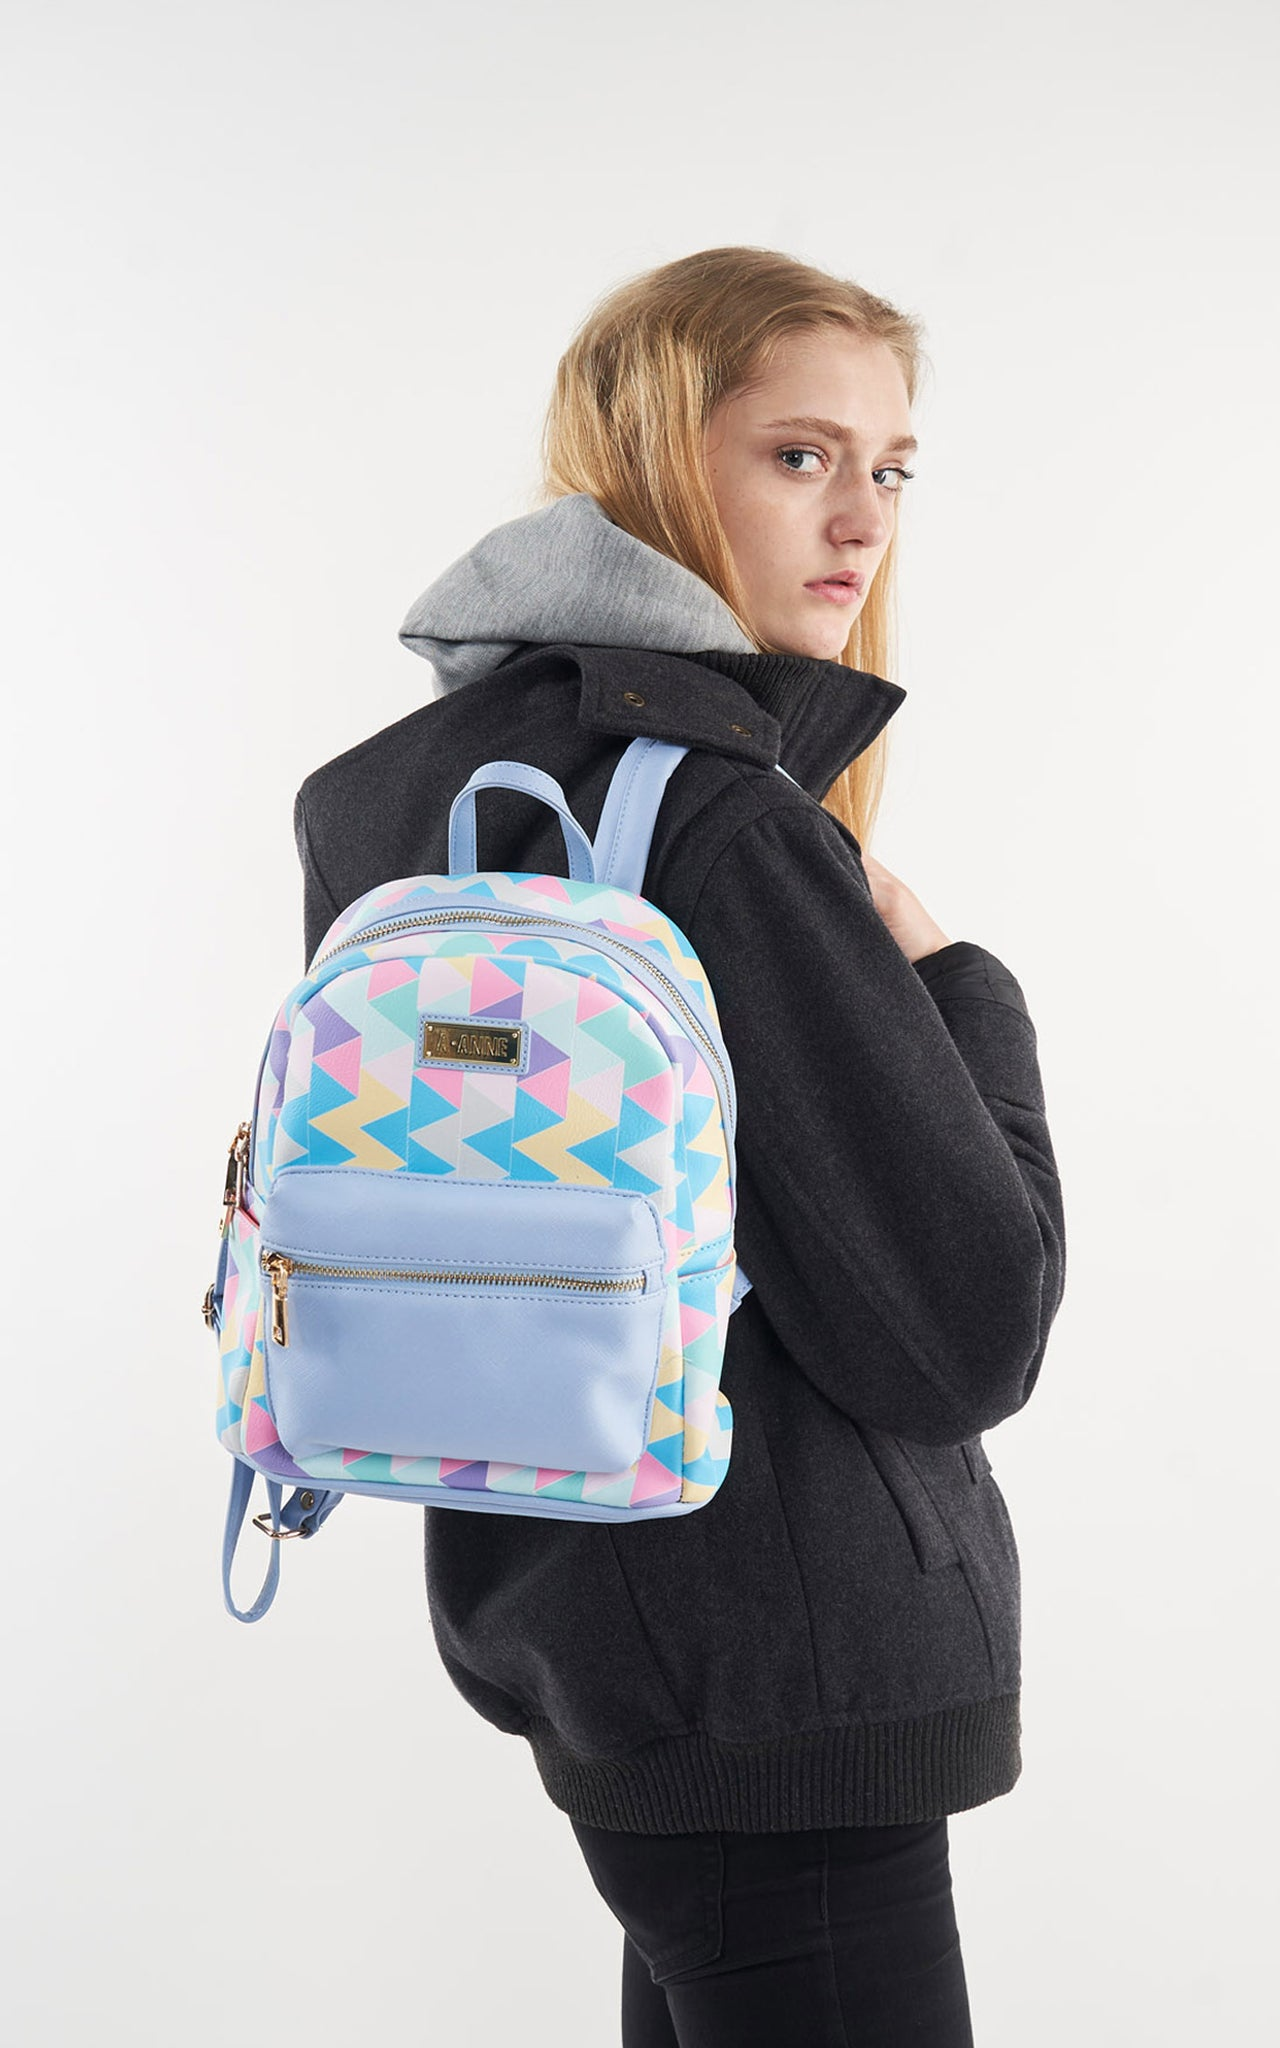 Carolina Blue Petite Backpack - A.Anne, Tokidoki, Ashlyn Anne, Fashion, Handbags, School, Bag, Accessories